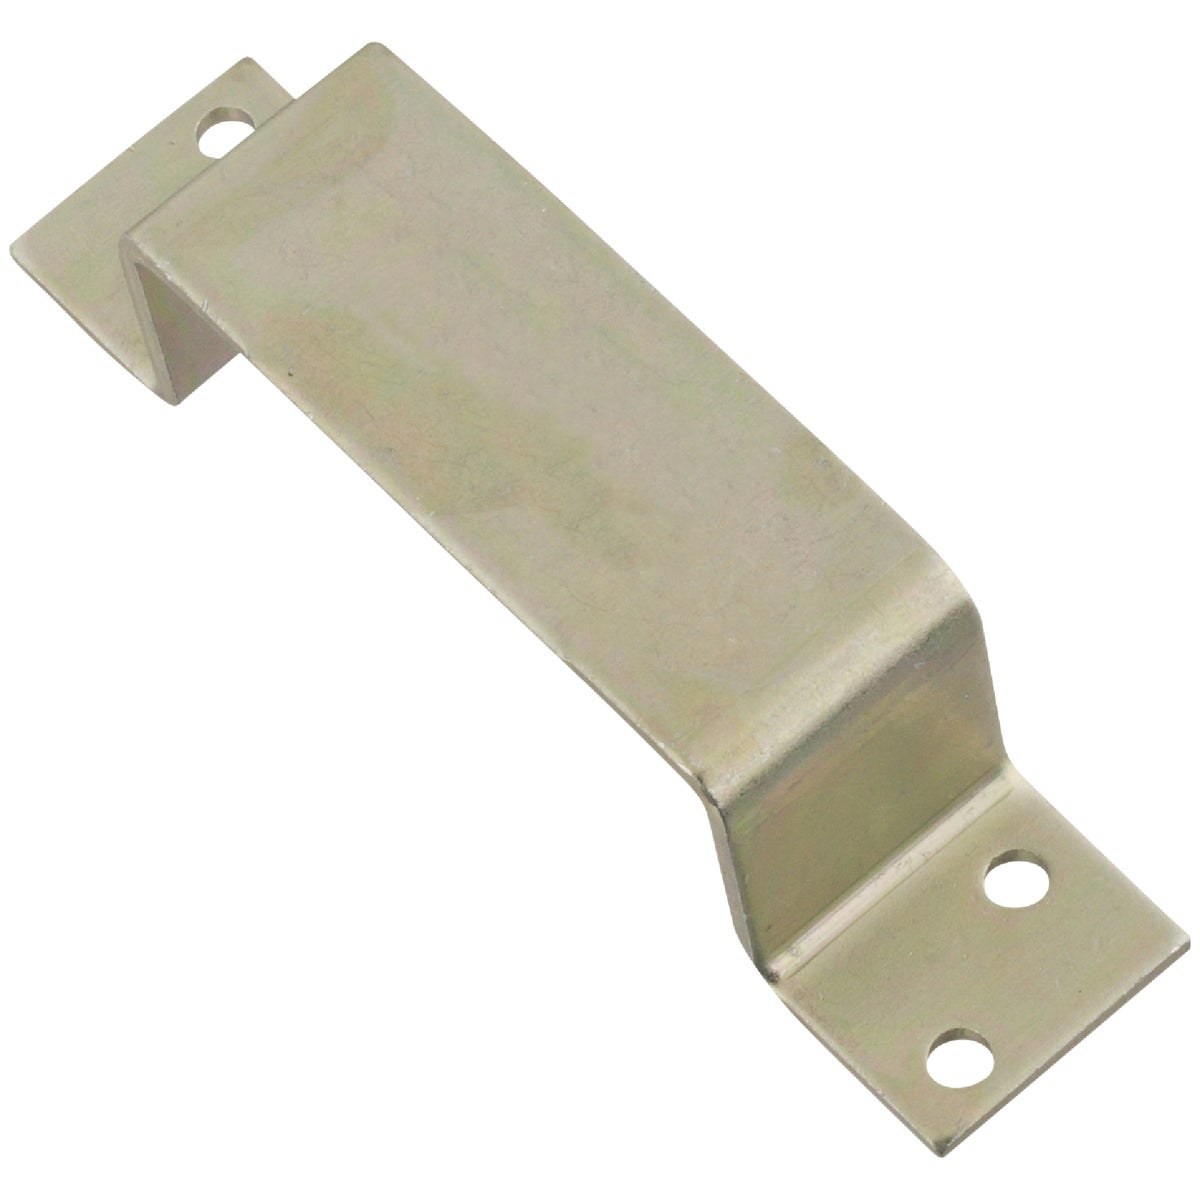 ZINC CLOSED BAR HOLDER - N235291 by National Mfg Co